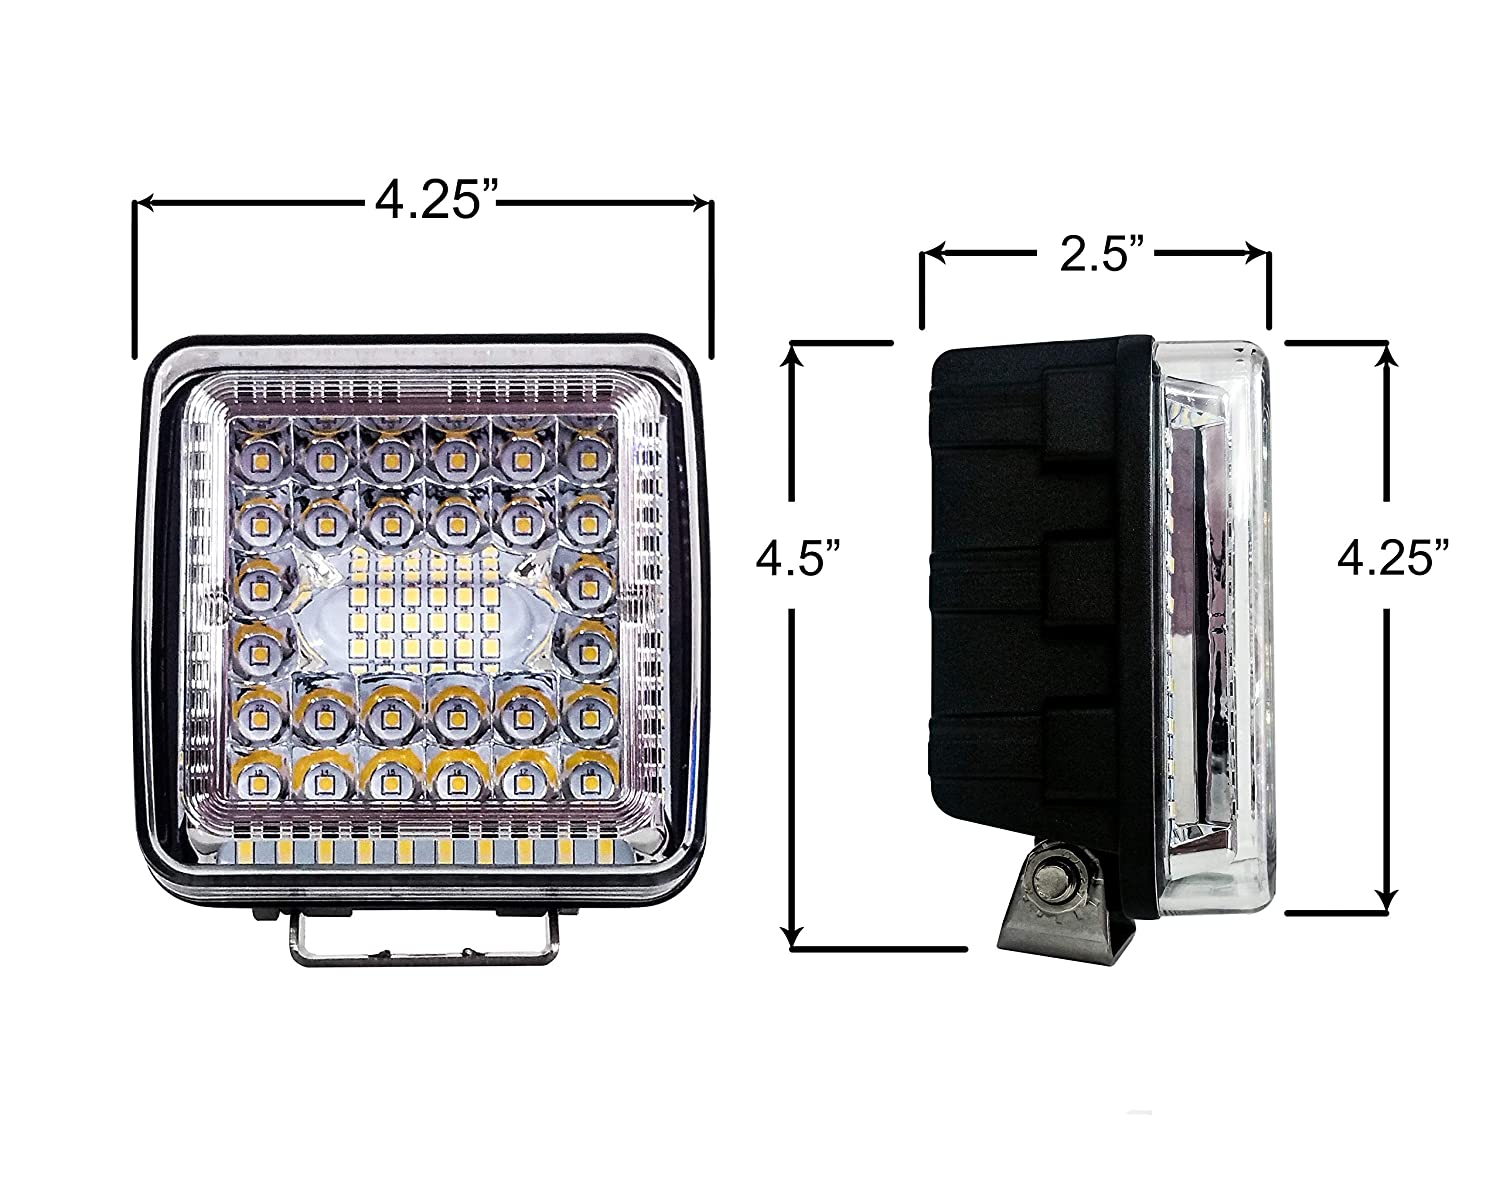 4 High Output 360/° Wide Beam Osram LED Work Light Driving Offroad Track Trailer Tractor Heavy Equipment Vehicles Combo Beam 12-32 volts